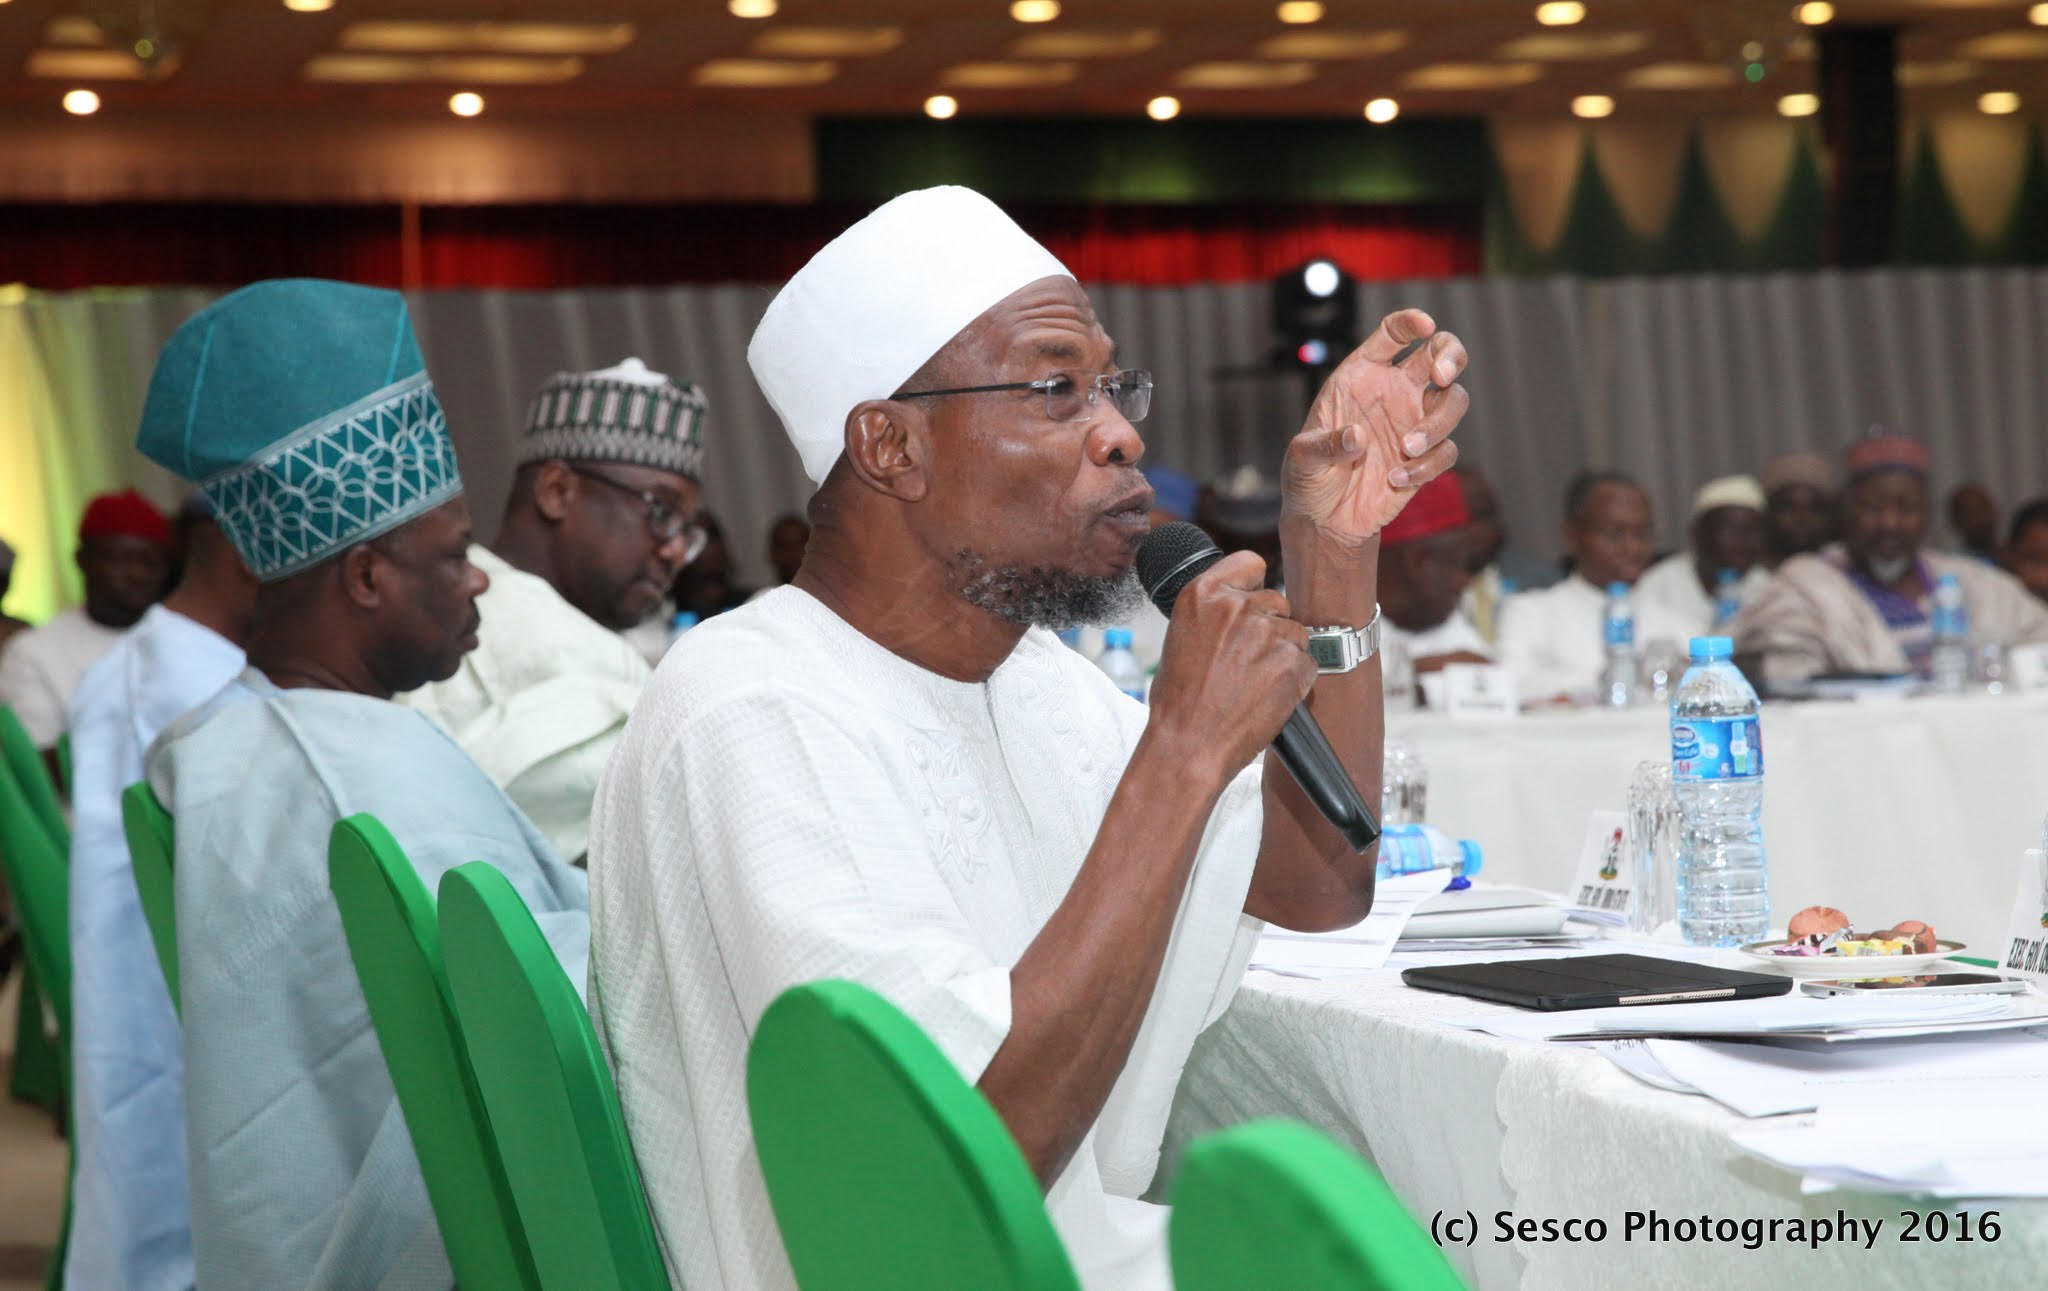 Osun 2018: Is It About Aregbesola? By Abiodun Komolafe